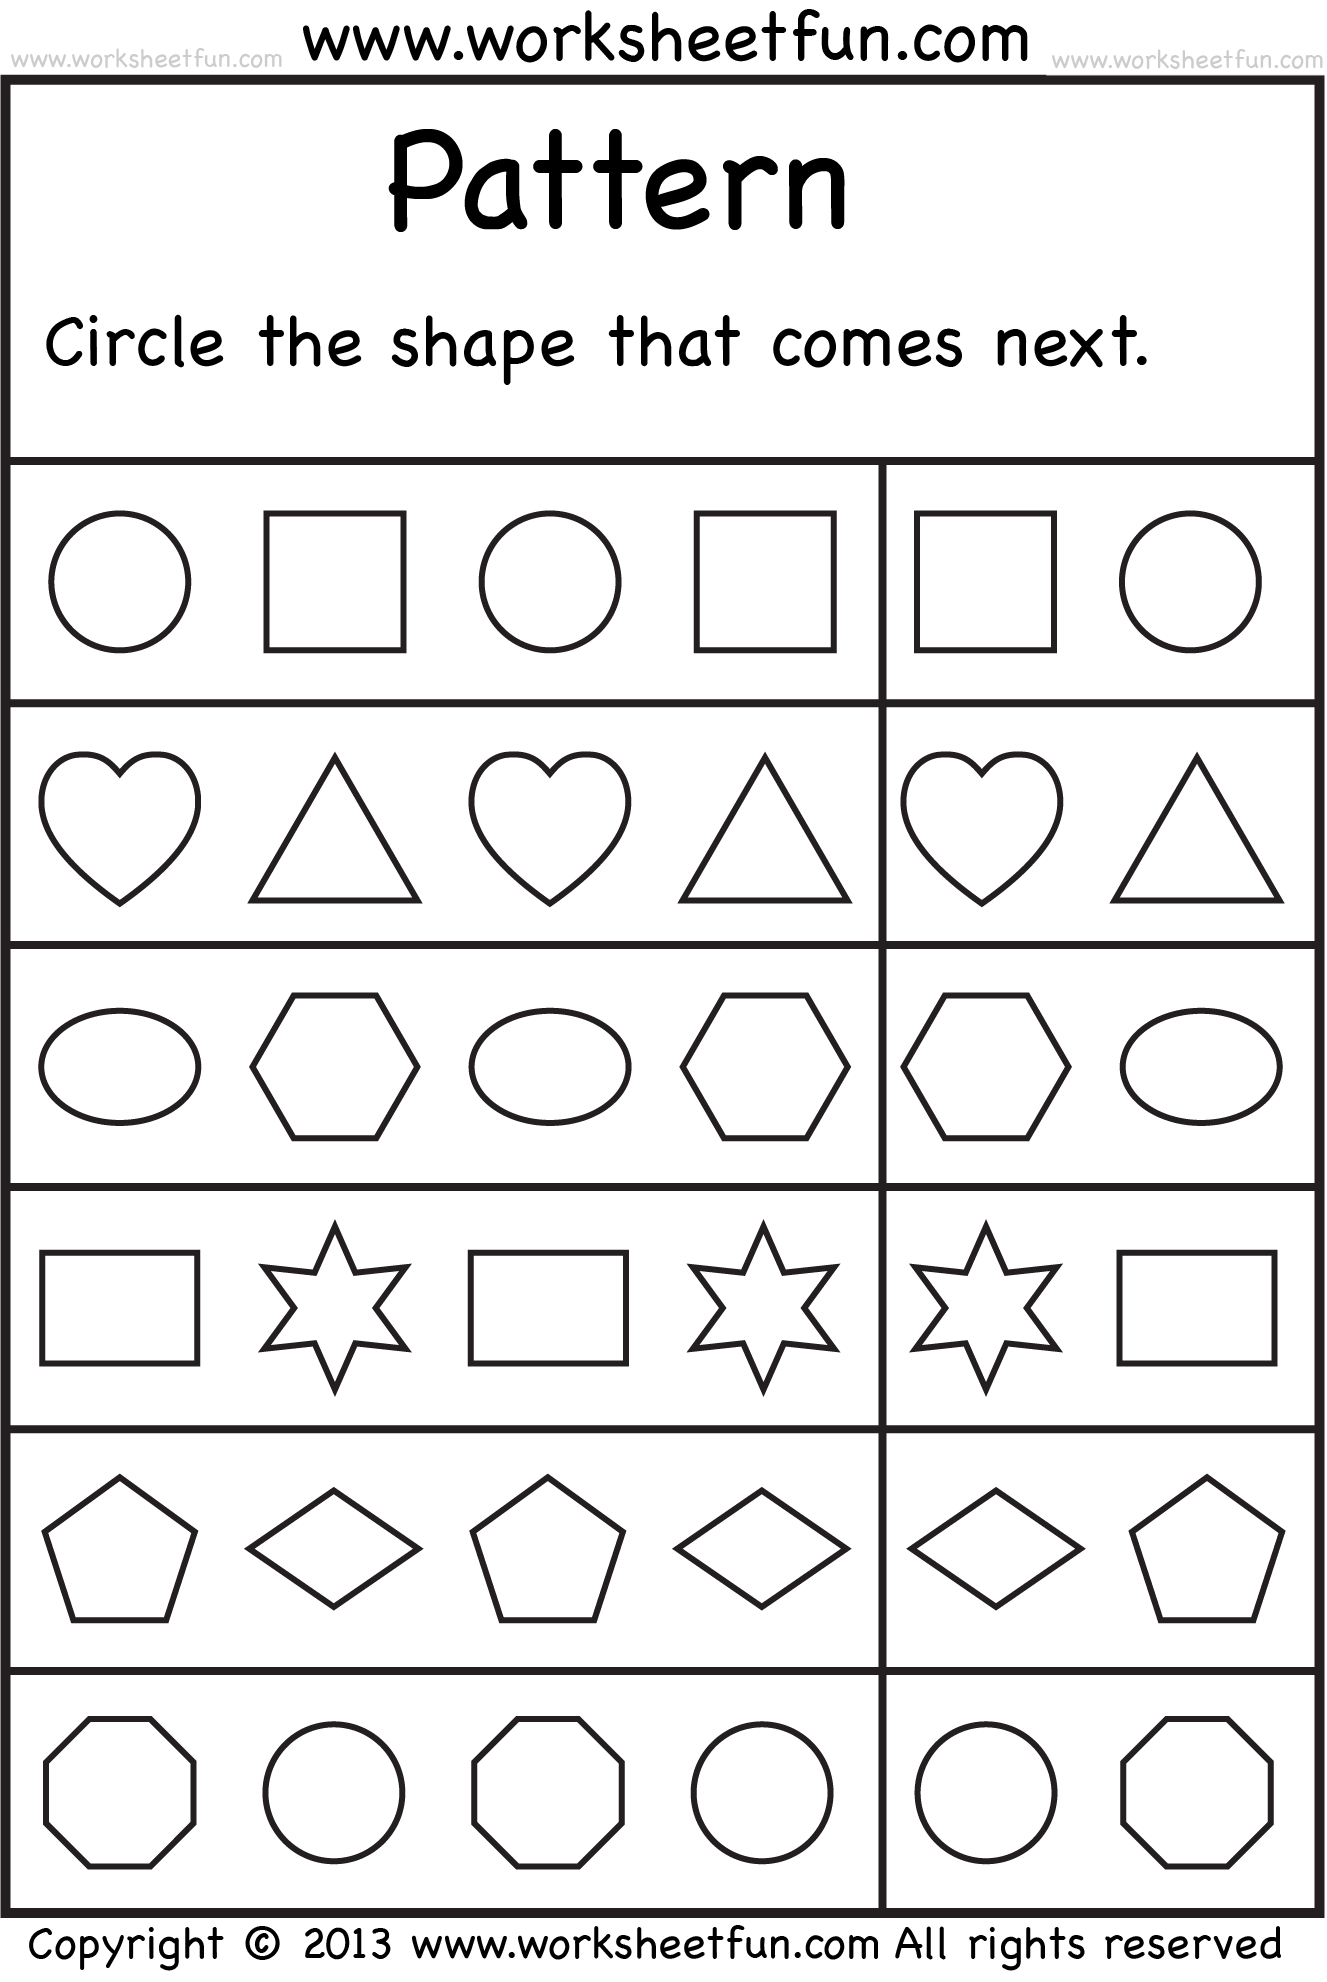 Weirdmailus  Pleasant  Images About School Worksheets On Pinterest  Number Words  With Inspiring  Images About School Worksheets On Pinterest  Number Words Alphabet Worksheets And Free Printable Kindergarten Worksheets With Endearing Practice Writing Letters And Numbers Worksheets Also Interview Worksheet For Students In Addition Measuring Jugs Worksheet And Balance Equations Worksheets As Well As Partitioning Decimals Worksheet Additionally Shapes Worksheets For Grade  From Pinterestcom With Weirdmailus  Inspiring  Images About School Worksheets On Pinterest  Number Words  With Endearing  Images About School Worksheets On Pinterest  Number Words Alphabet Worksheets And Free Printable Kindergarten Worksheets And Pleasant Practice Writing Letters And Numbers Worksheets Also Interview Worksheet For Students In Addition Measuring Jugs Worksheet From Pinterestcom